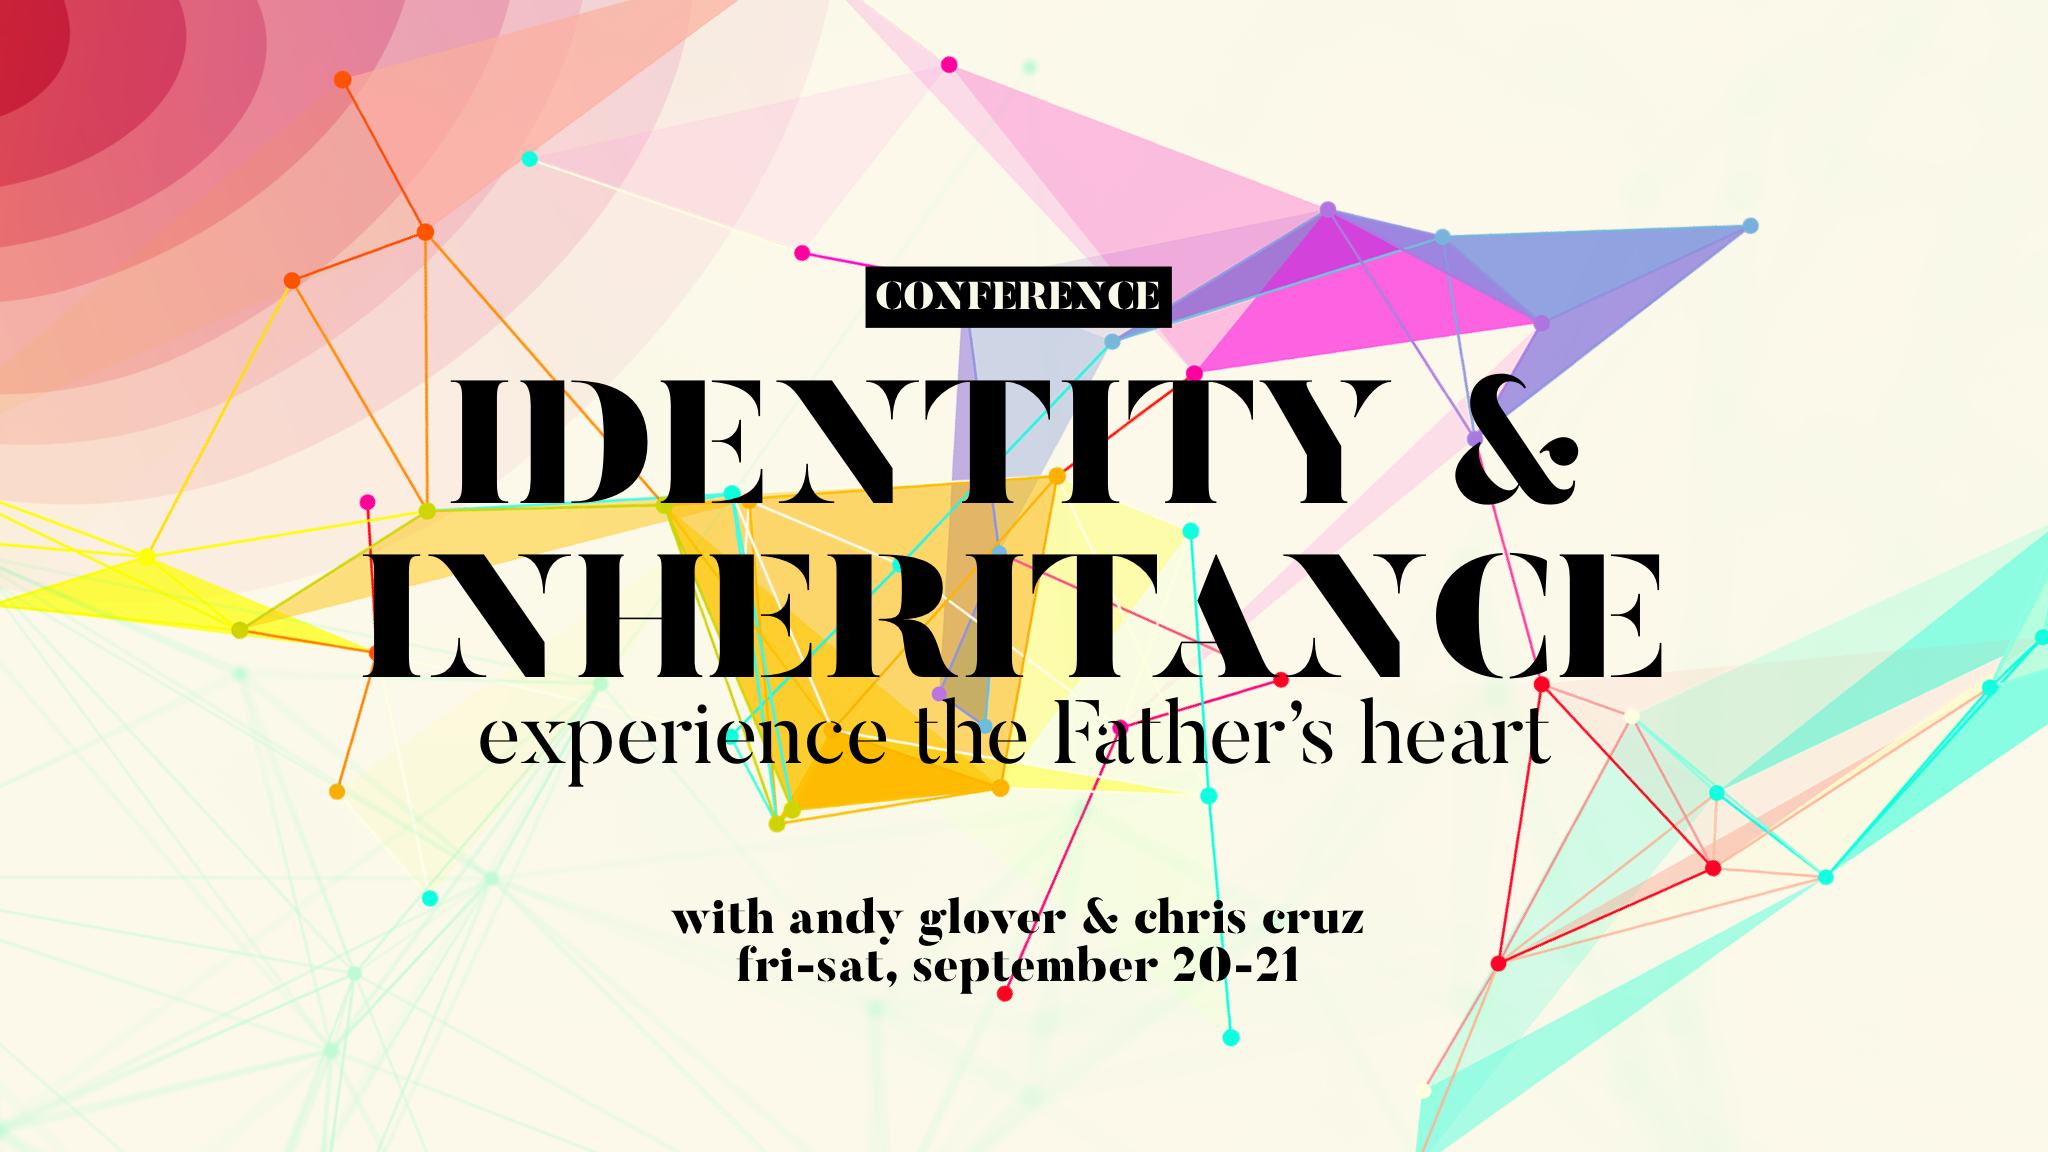 IDENTITY AND INHERITANCE CONFERENCE 2019 -